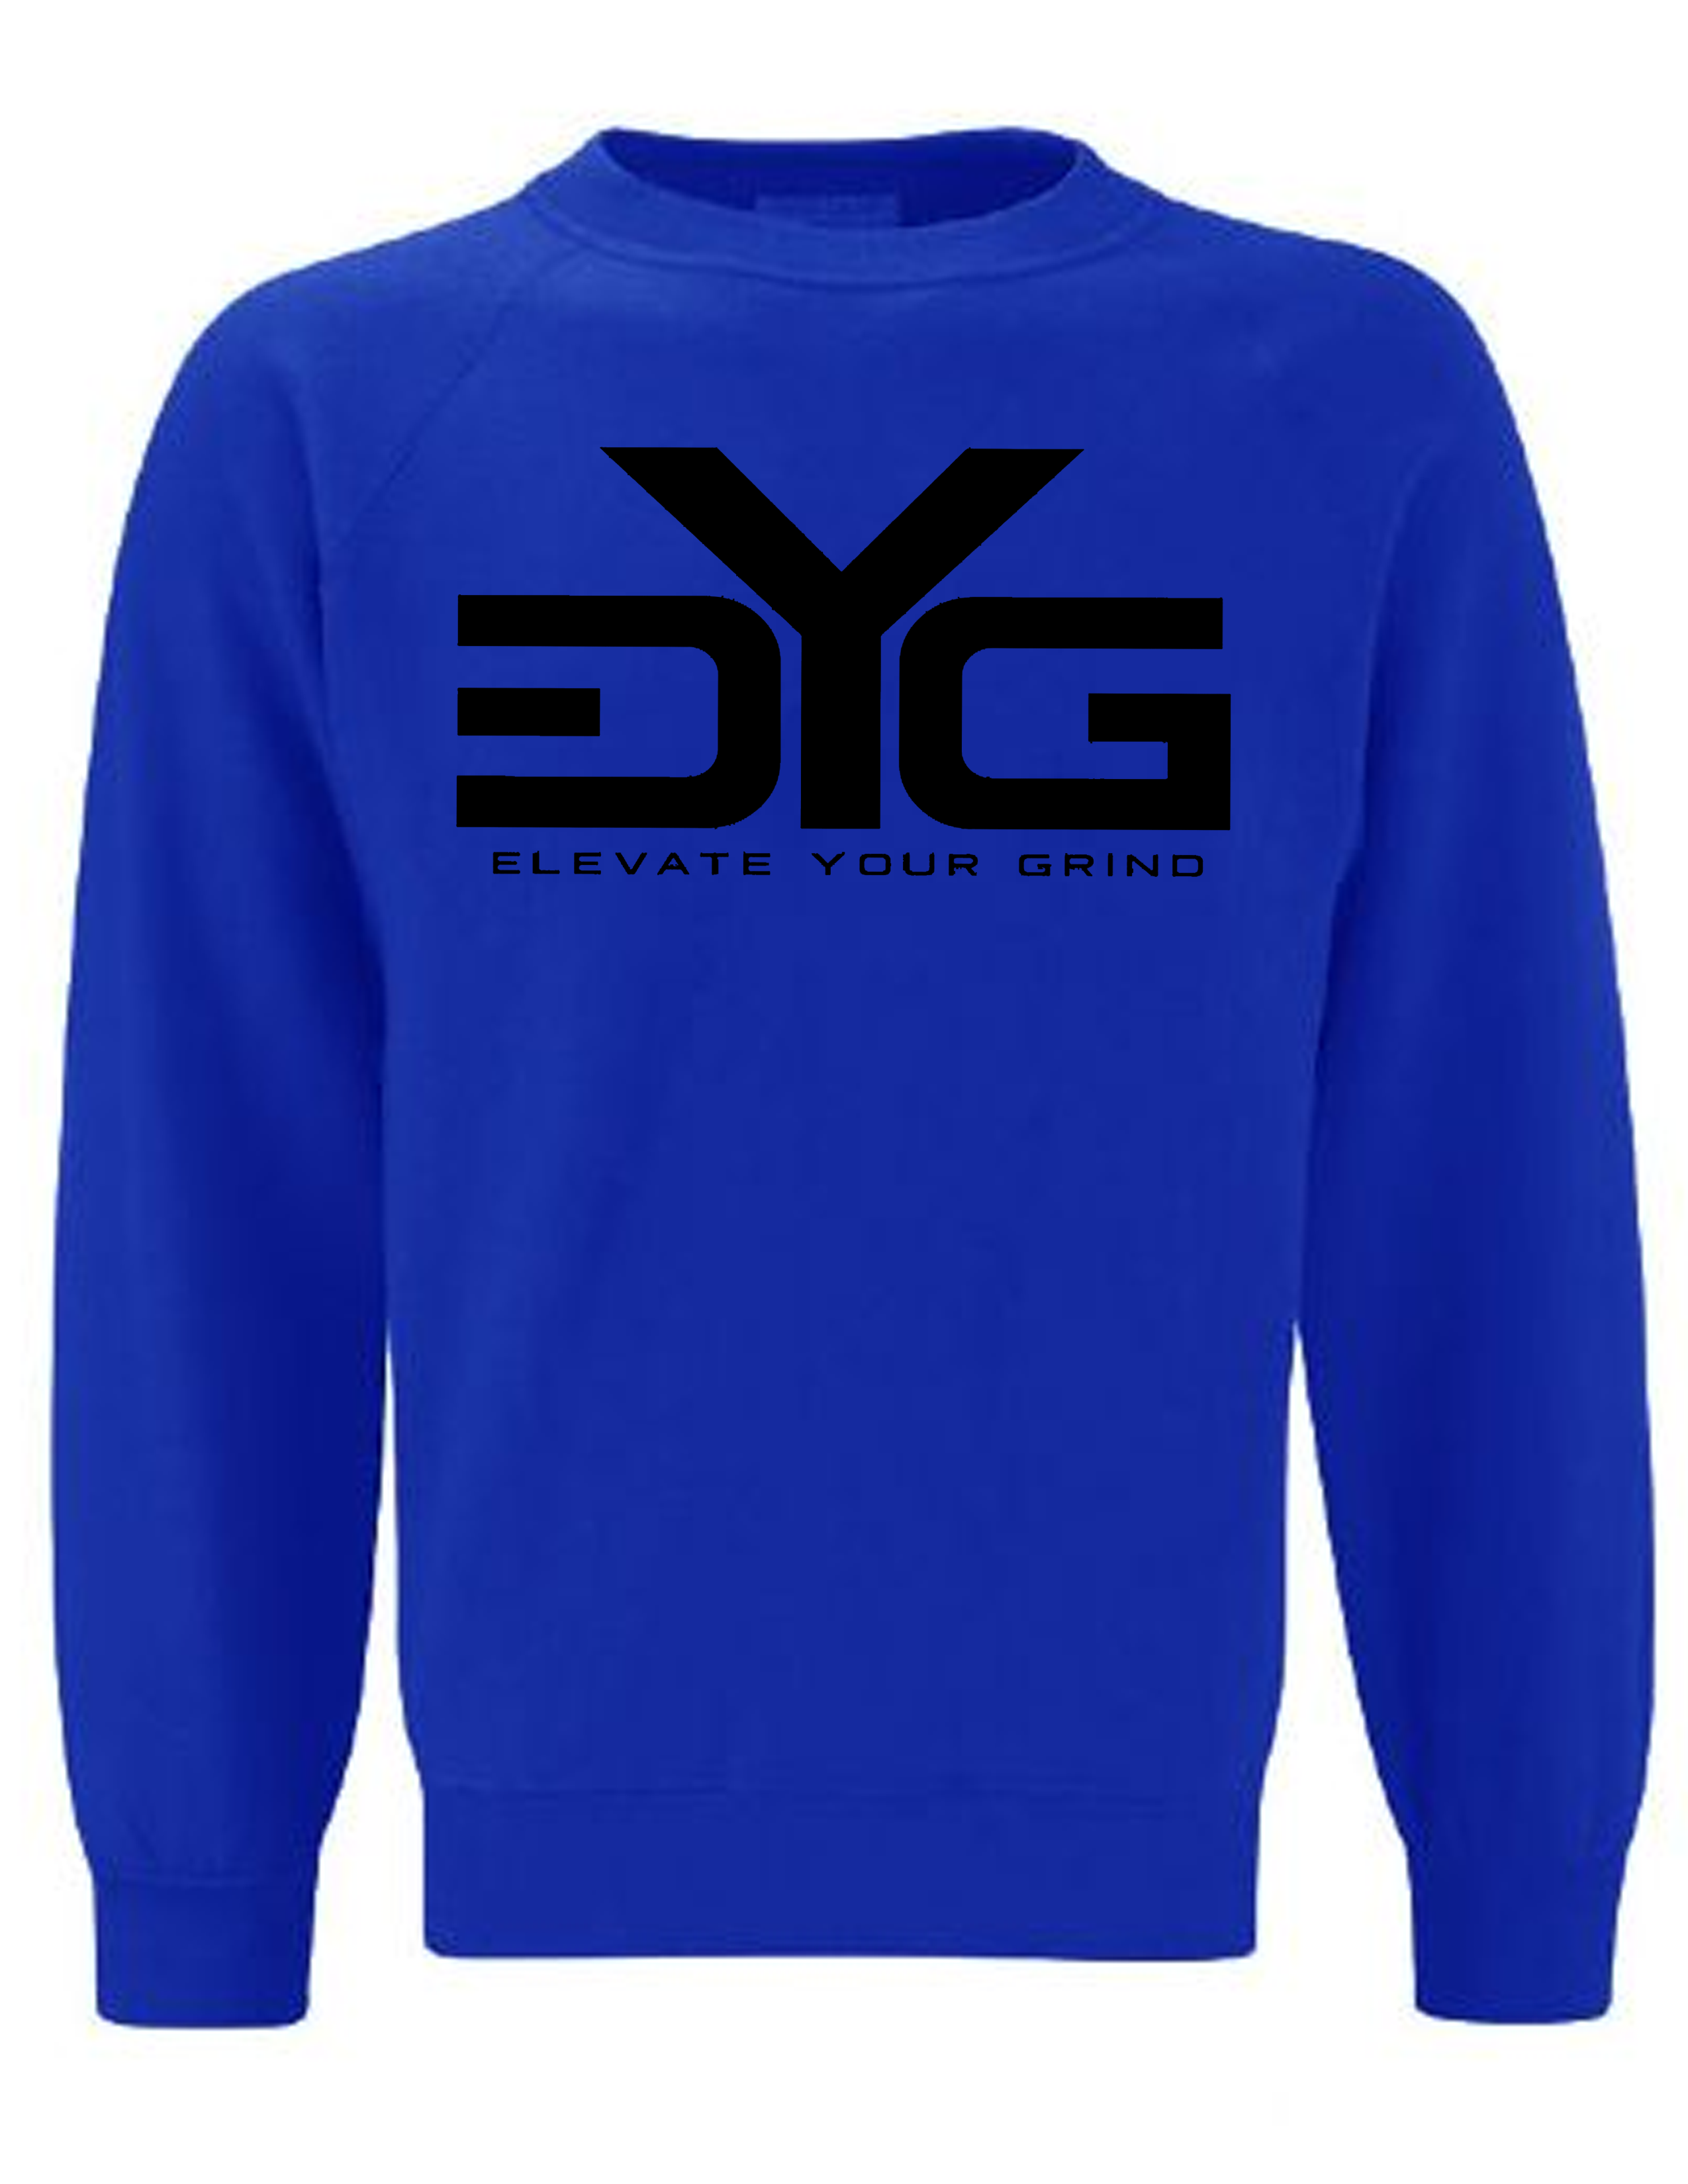 27cedfb59eb Blue Black Sweat Shirt ⋆ Elevate Your Grind